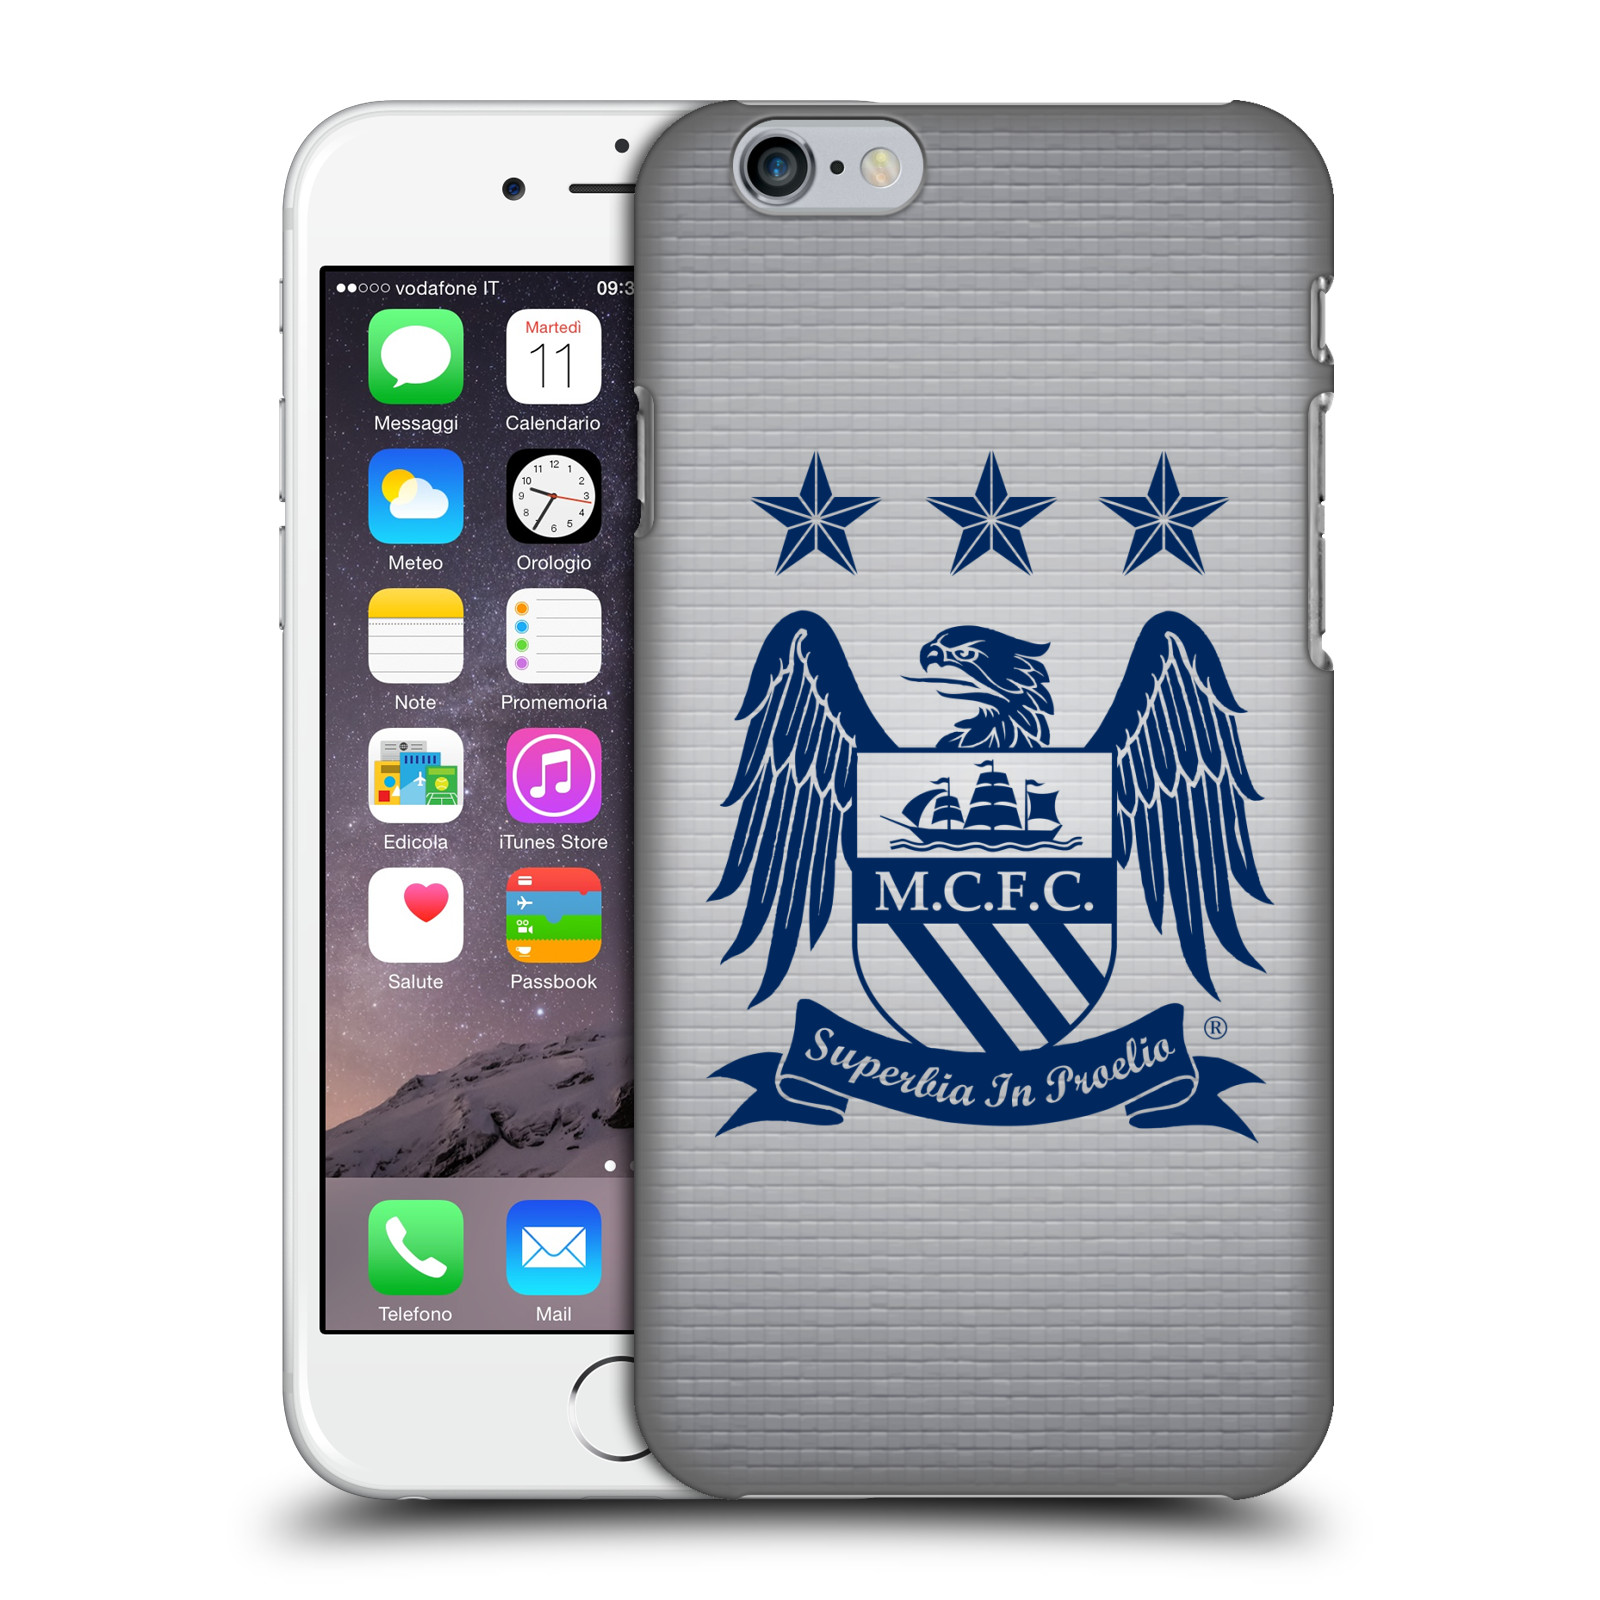 Manchester City FC MCFC Crest Pixels-Obsidian Cube on Grey